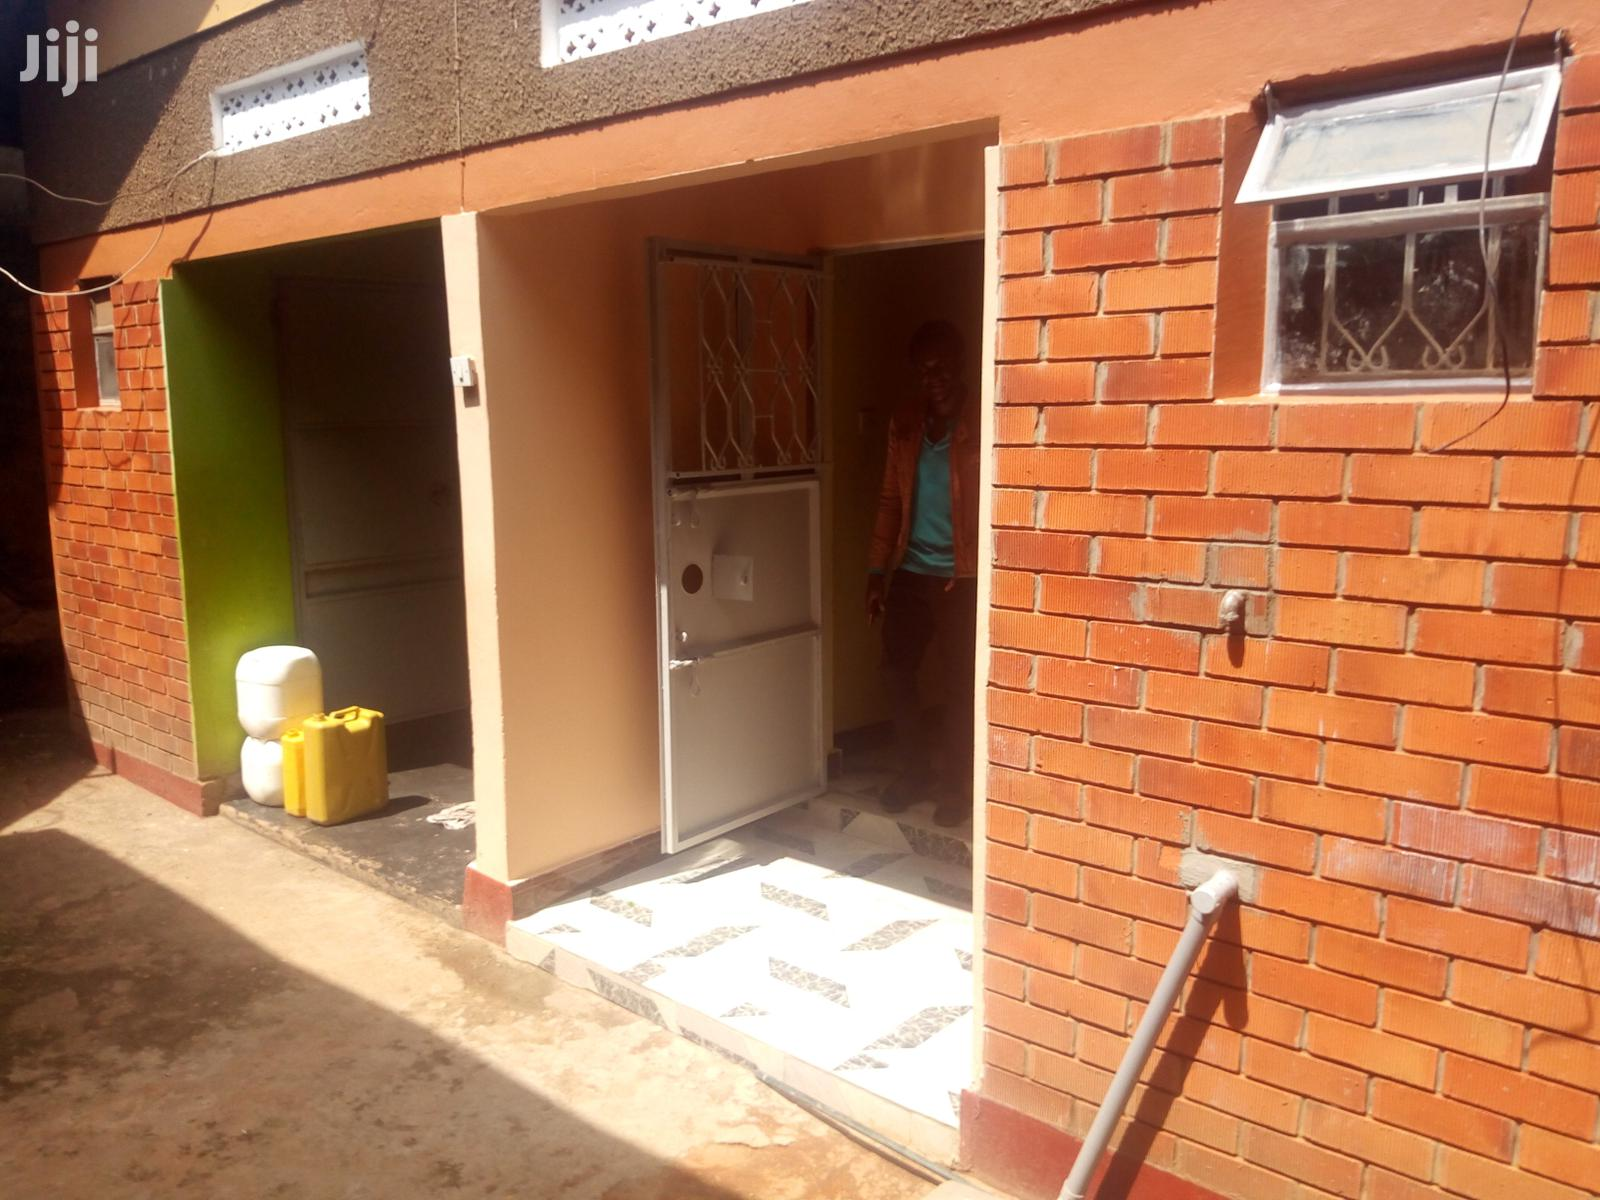 Archive: Kireka Modern Double Room for Rent